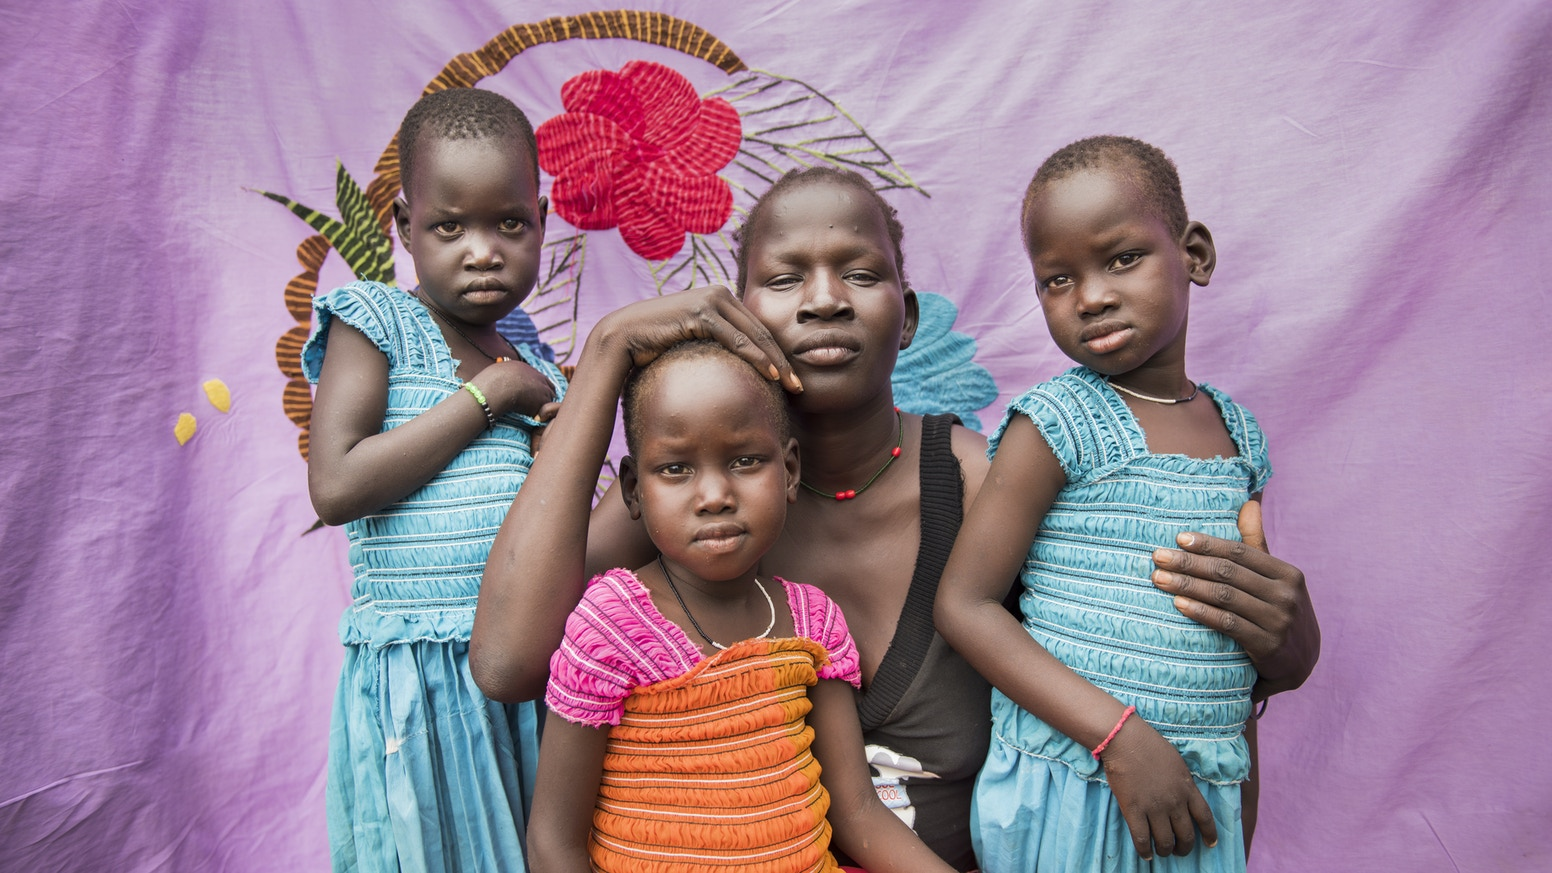 In a remote refugee camp, South Sudanese women keep tradition alive by hand-embroidering sheets and pillowcases.